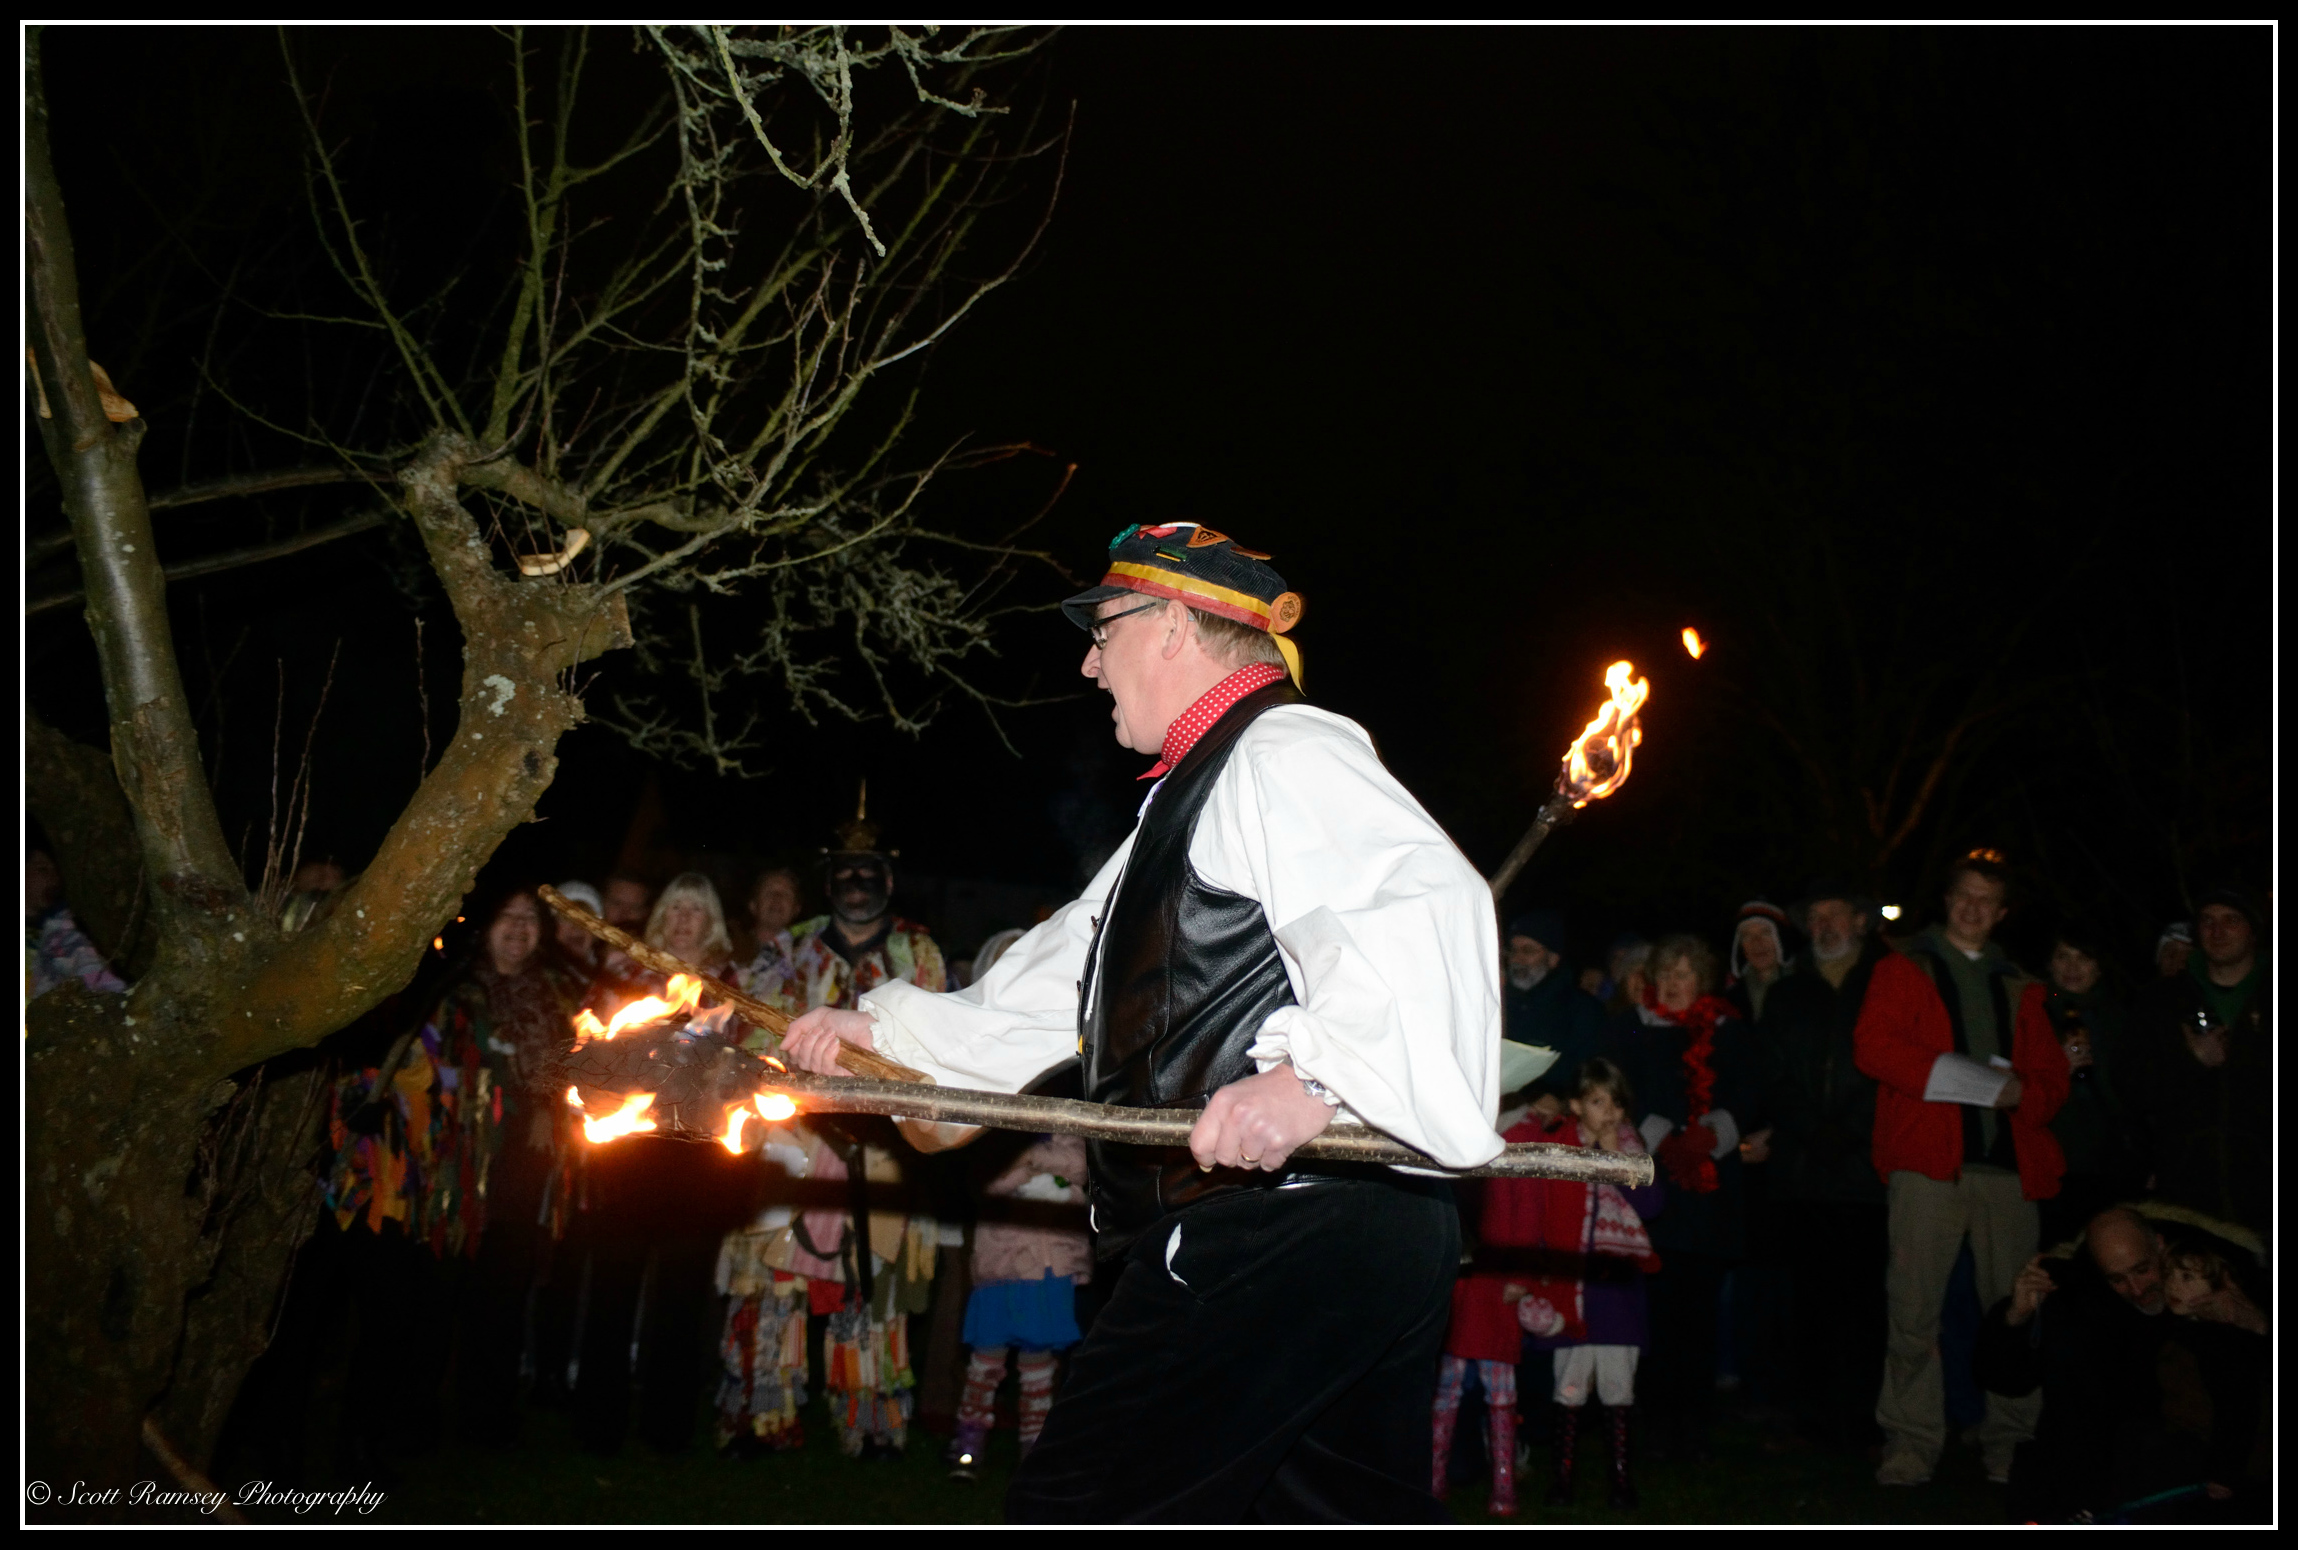 During the Wassail at Tarring village in West Sussex a stick is hit against an apple tree and achant shouted. The idea is to make as much noise as possible to awaken the tree spirits.